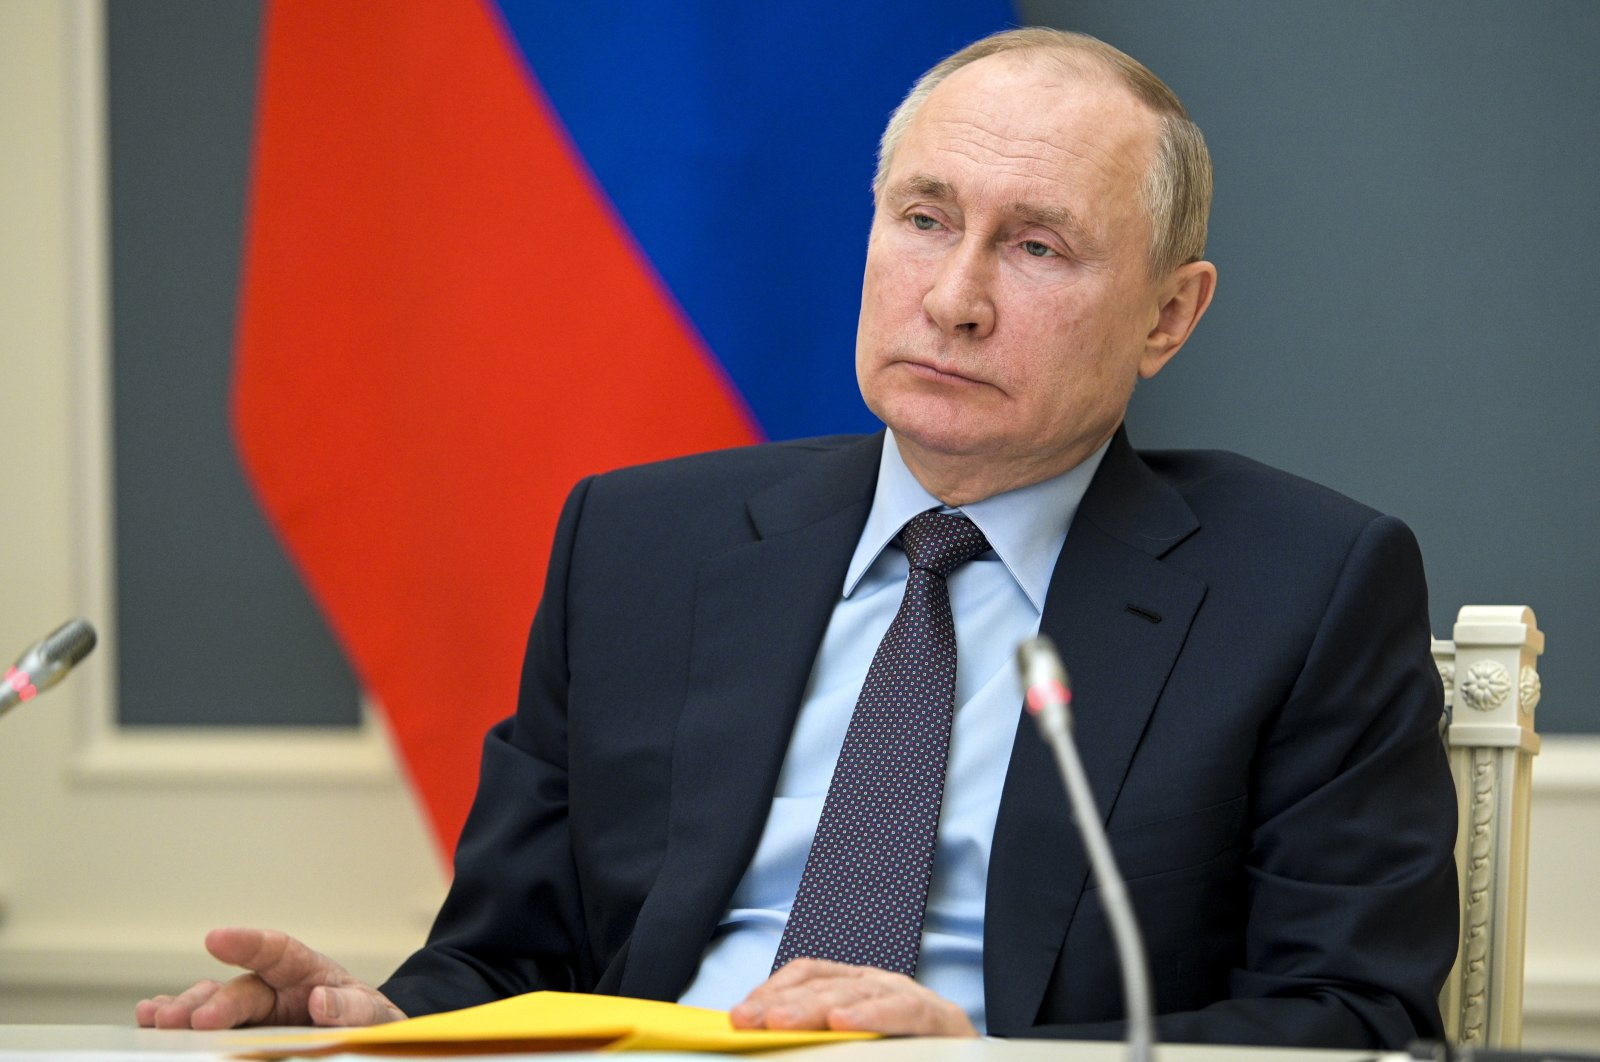 Russian President Vladimir Putin attends a session of the Russian Geographical Society via video link in Moscow, Russia, April 14, 2021. (AP Photo)